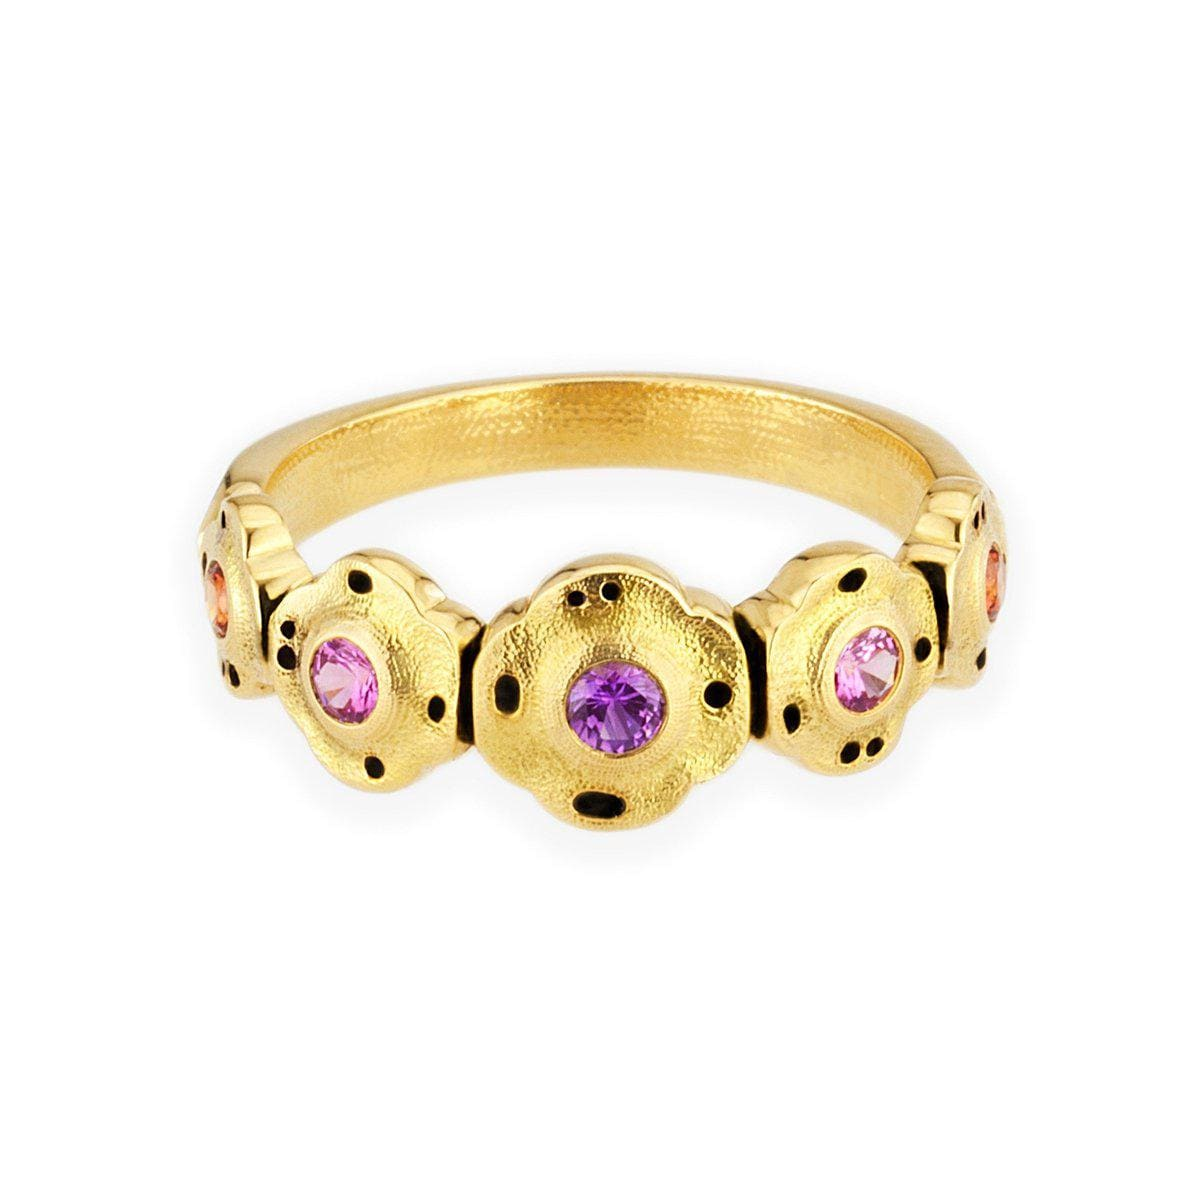 18K Flora Purple Pink Mix Sapphire Ring - R-207S-Alex Sepkus-Renee Taylor Gallery